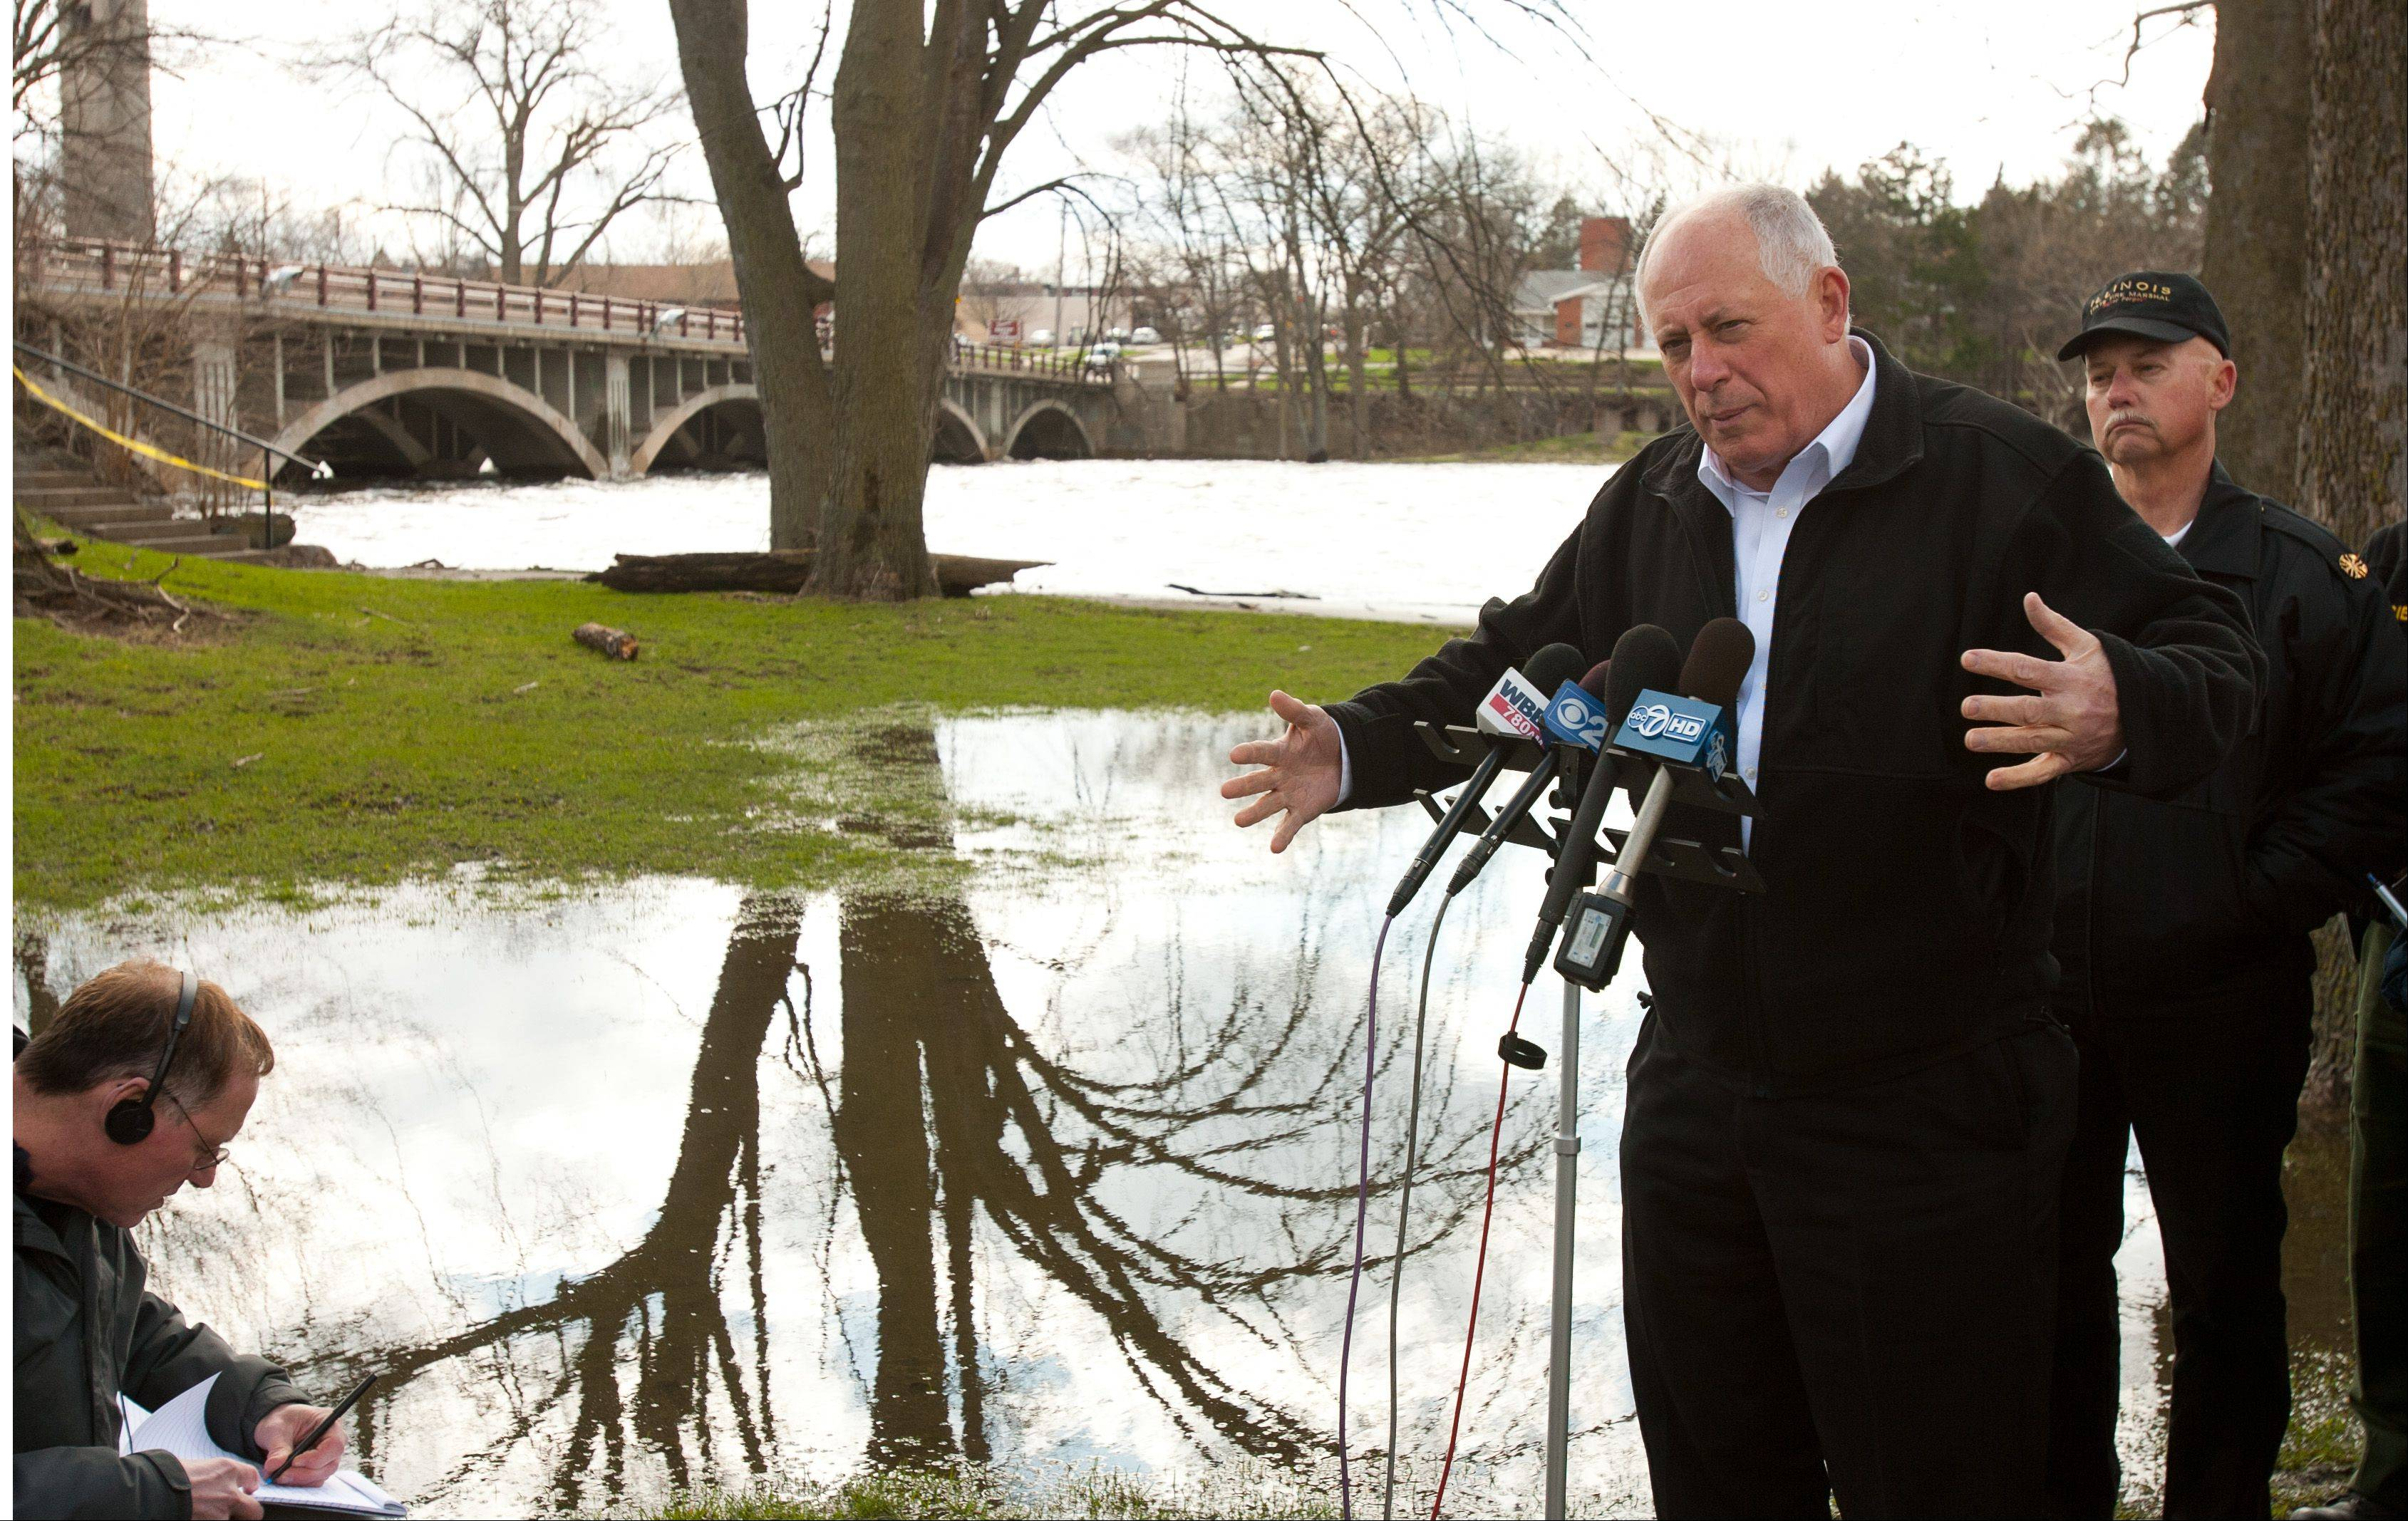 Gov. Pat Quinn addresses flooding concerns throughout the state during a news conference Saturday along the Fox River in North Aurora.